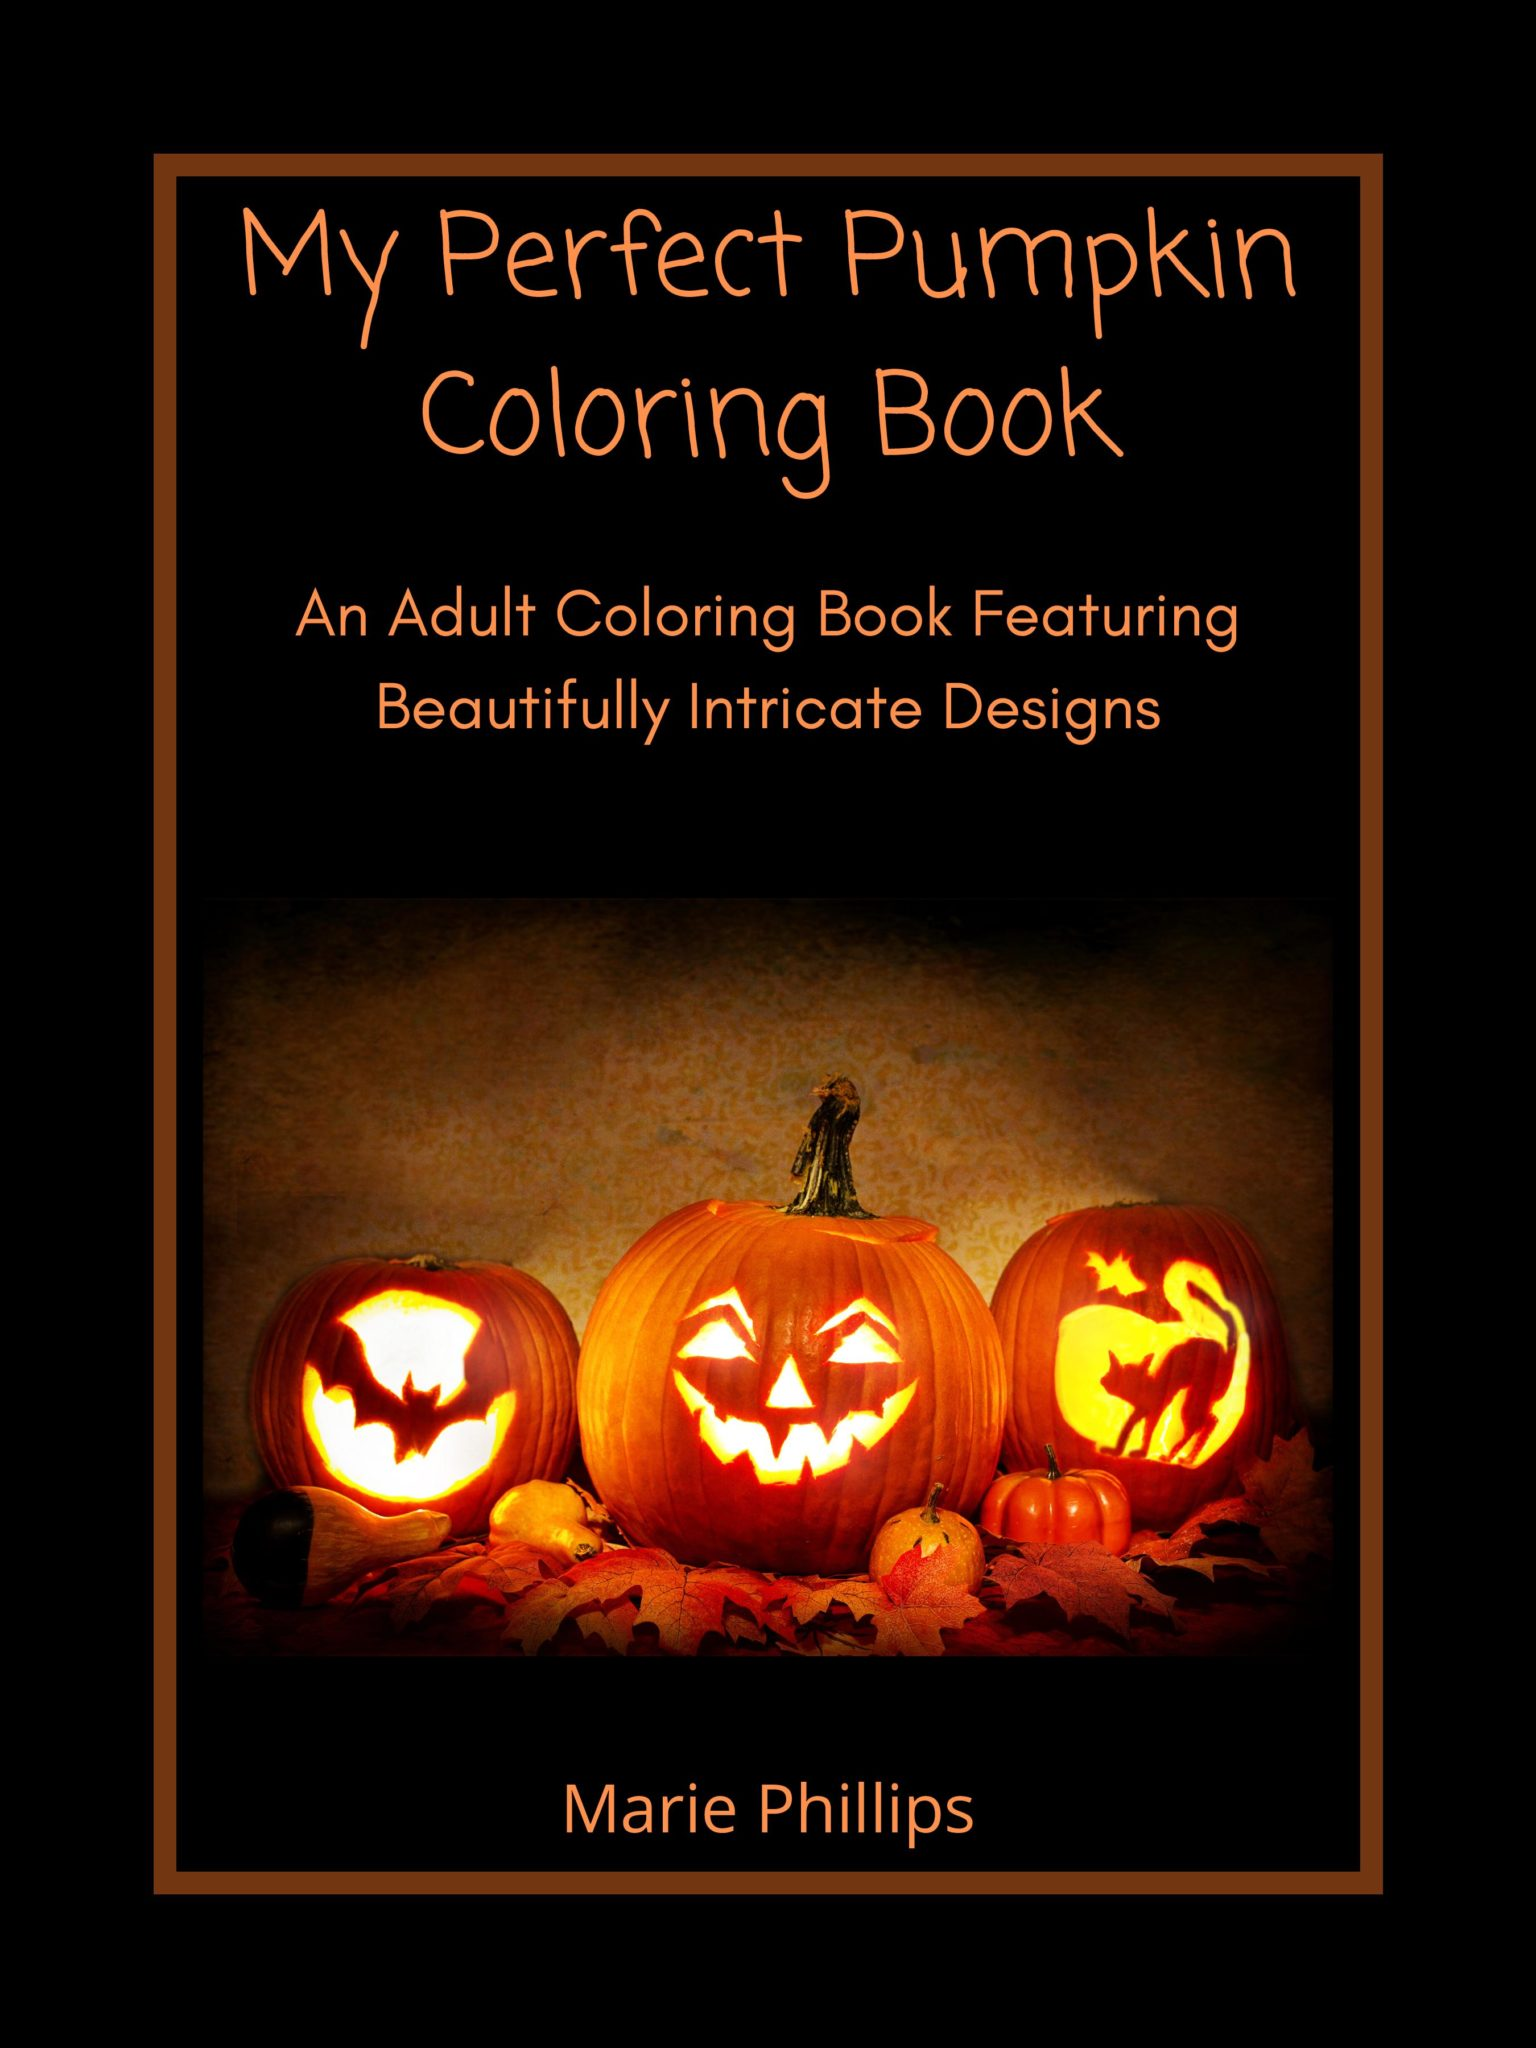 Fall Harvest Pumpkin coloring book adults